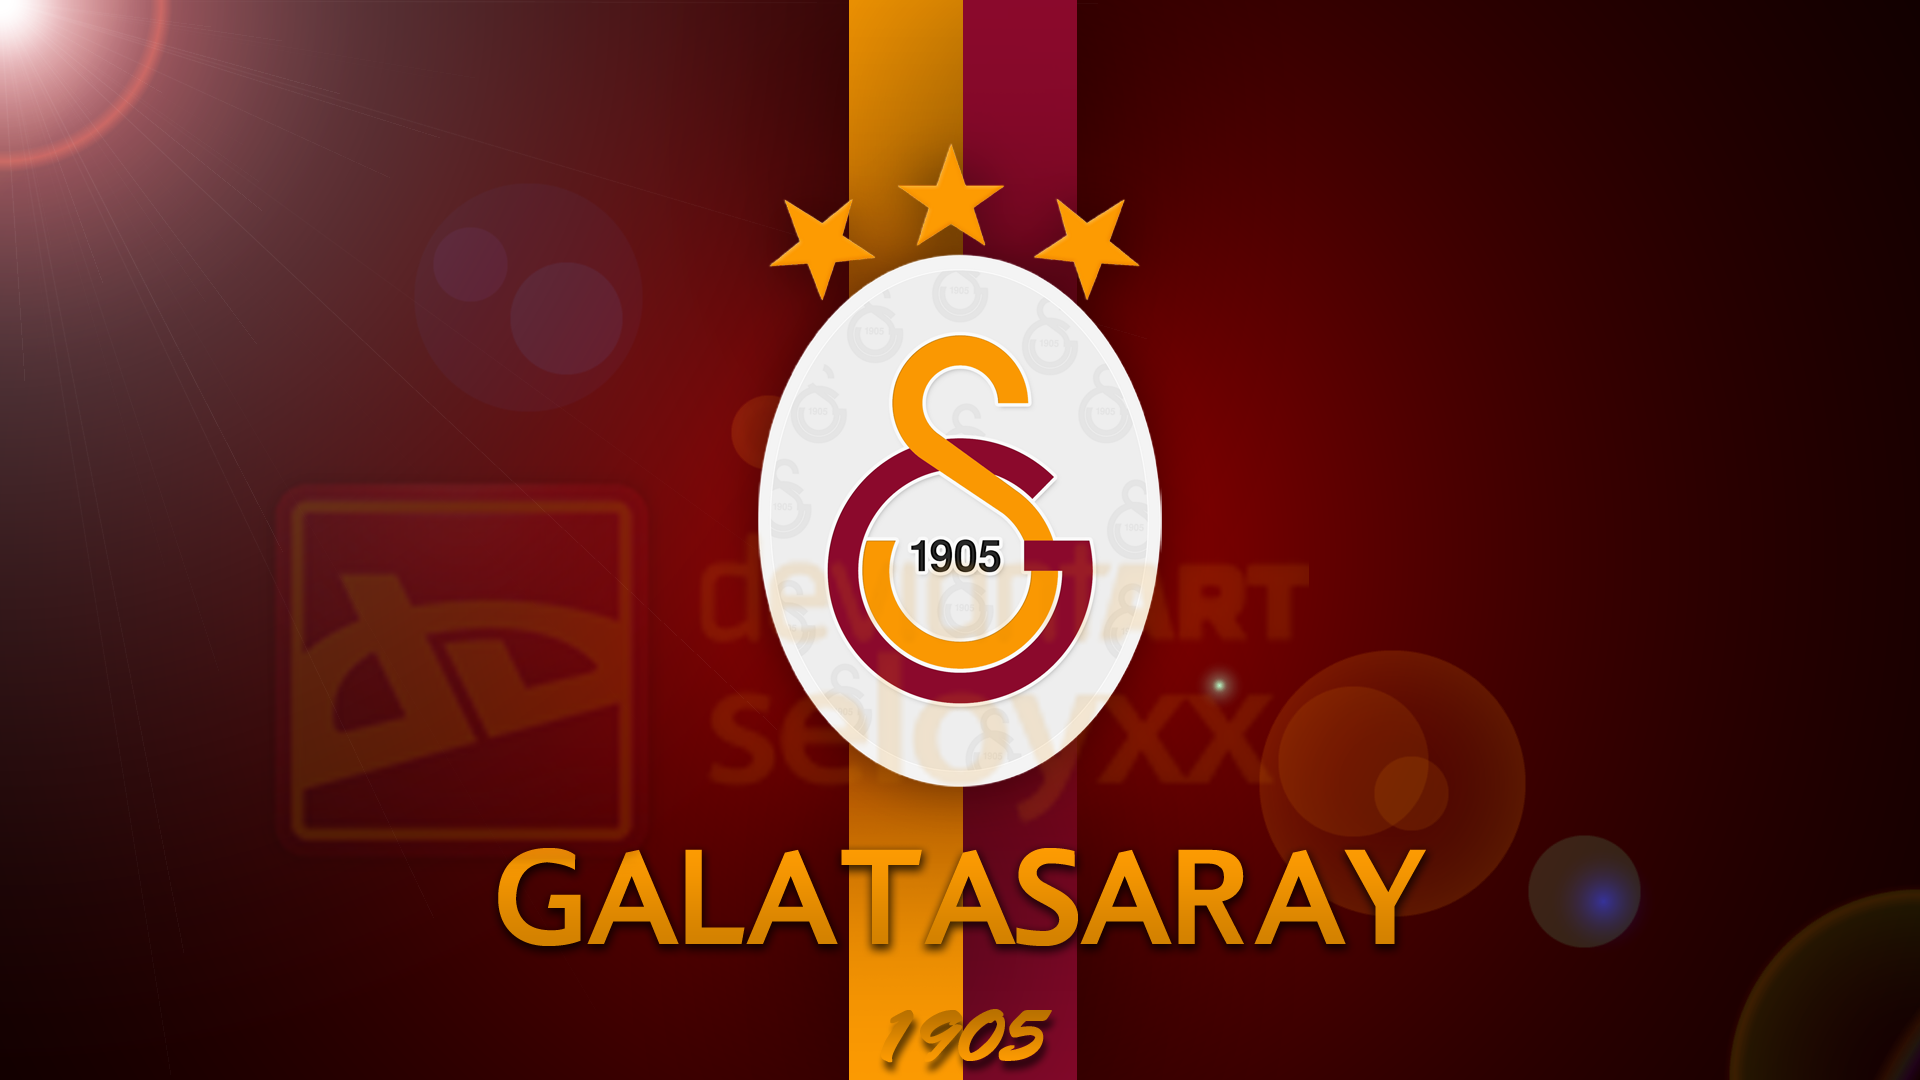 Galatasaray Wallpaper by seloyxx on DeviantArt